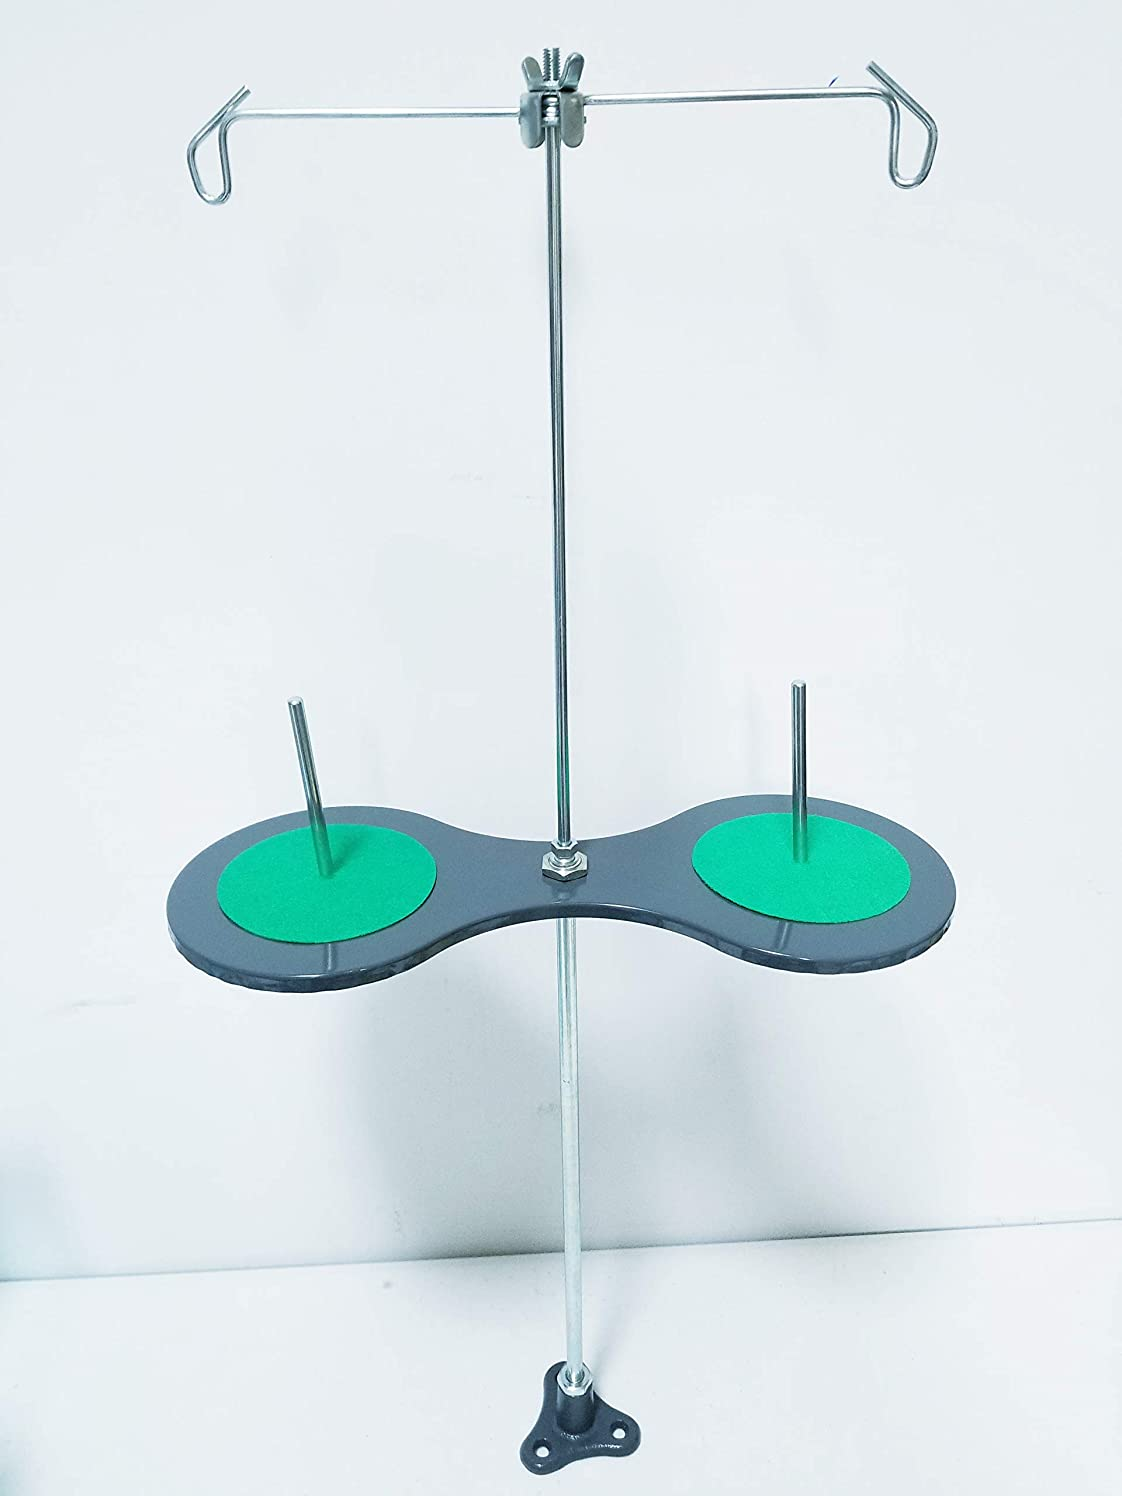 2 Cone and Spool Stand Thread Holder with Sturdy Metal Base, for Industrial Sewing Machines